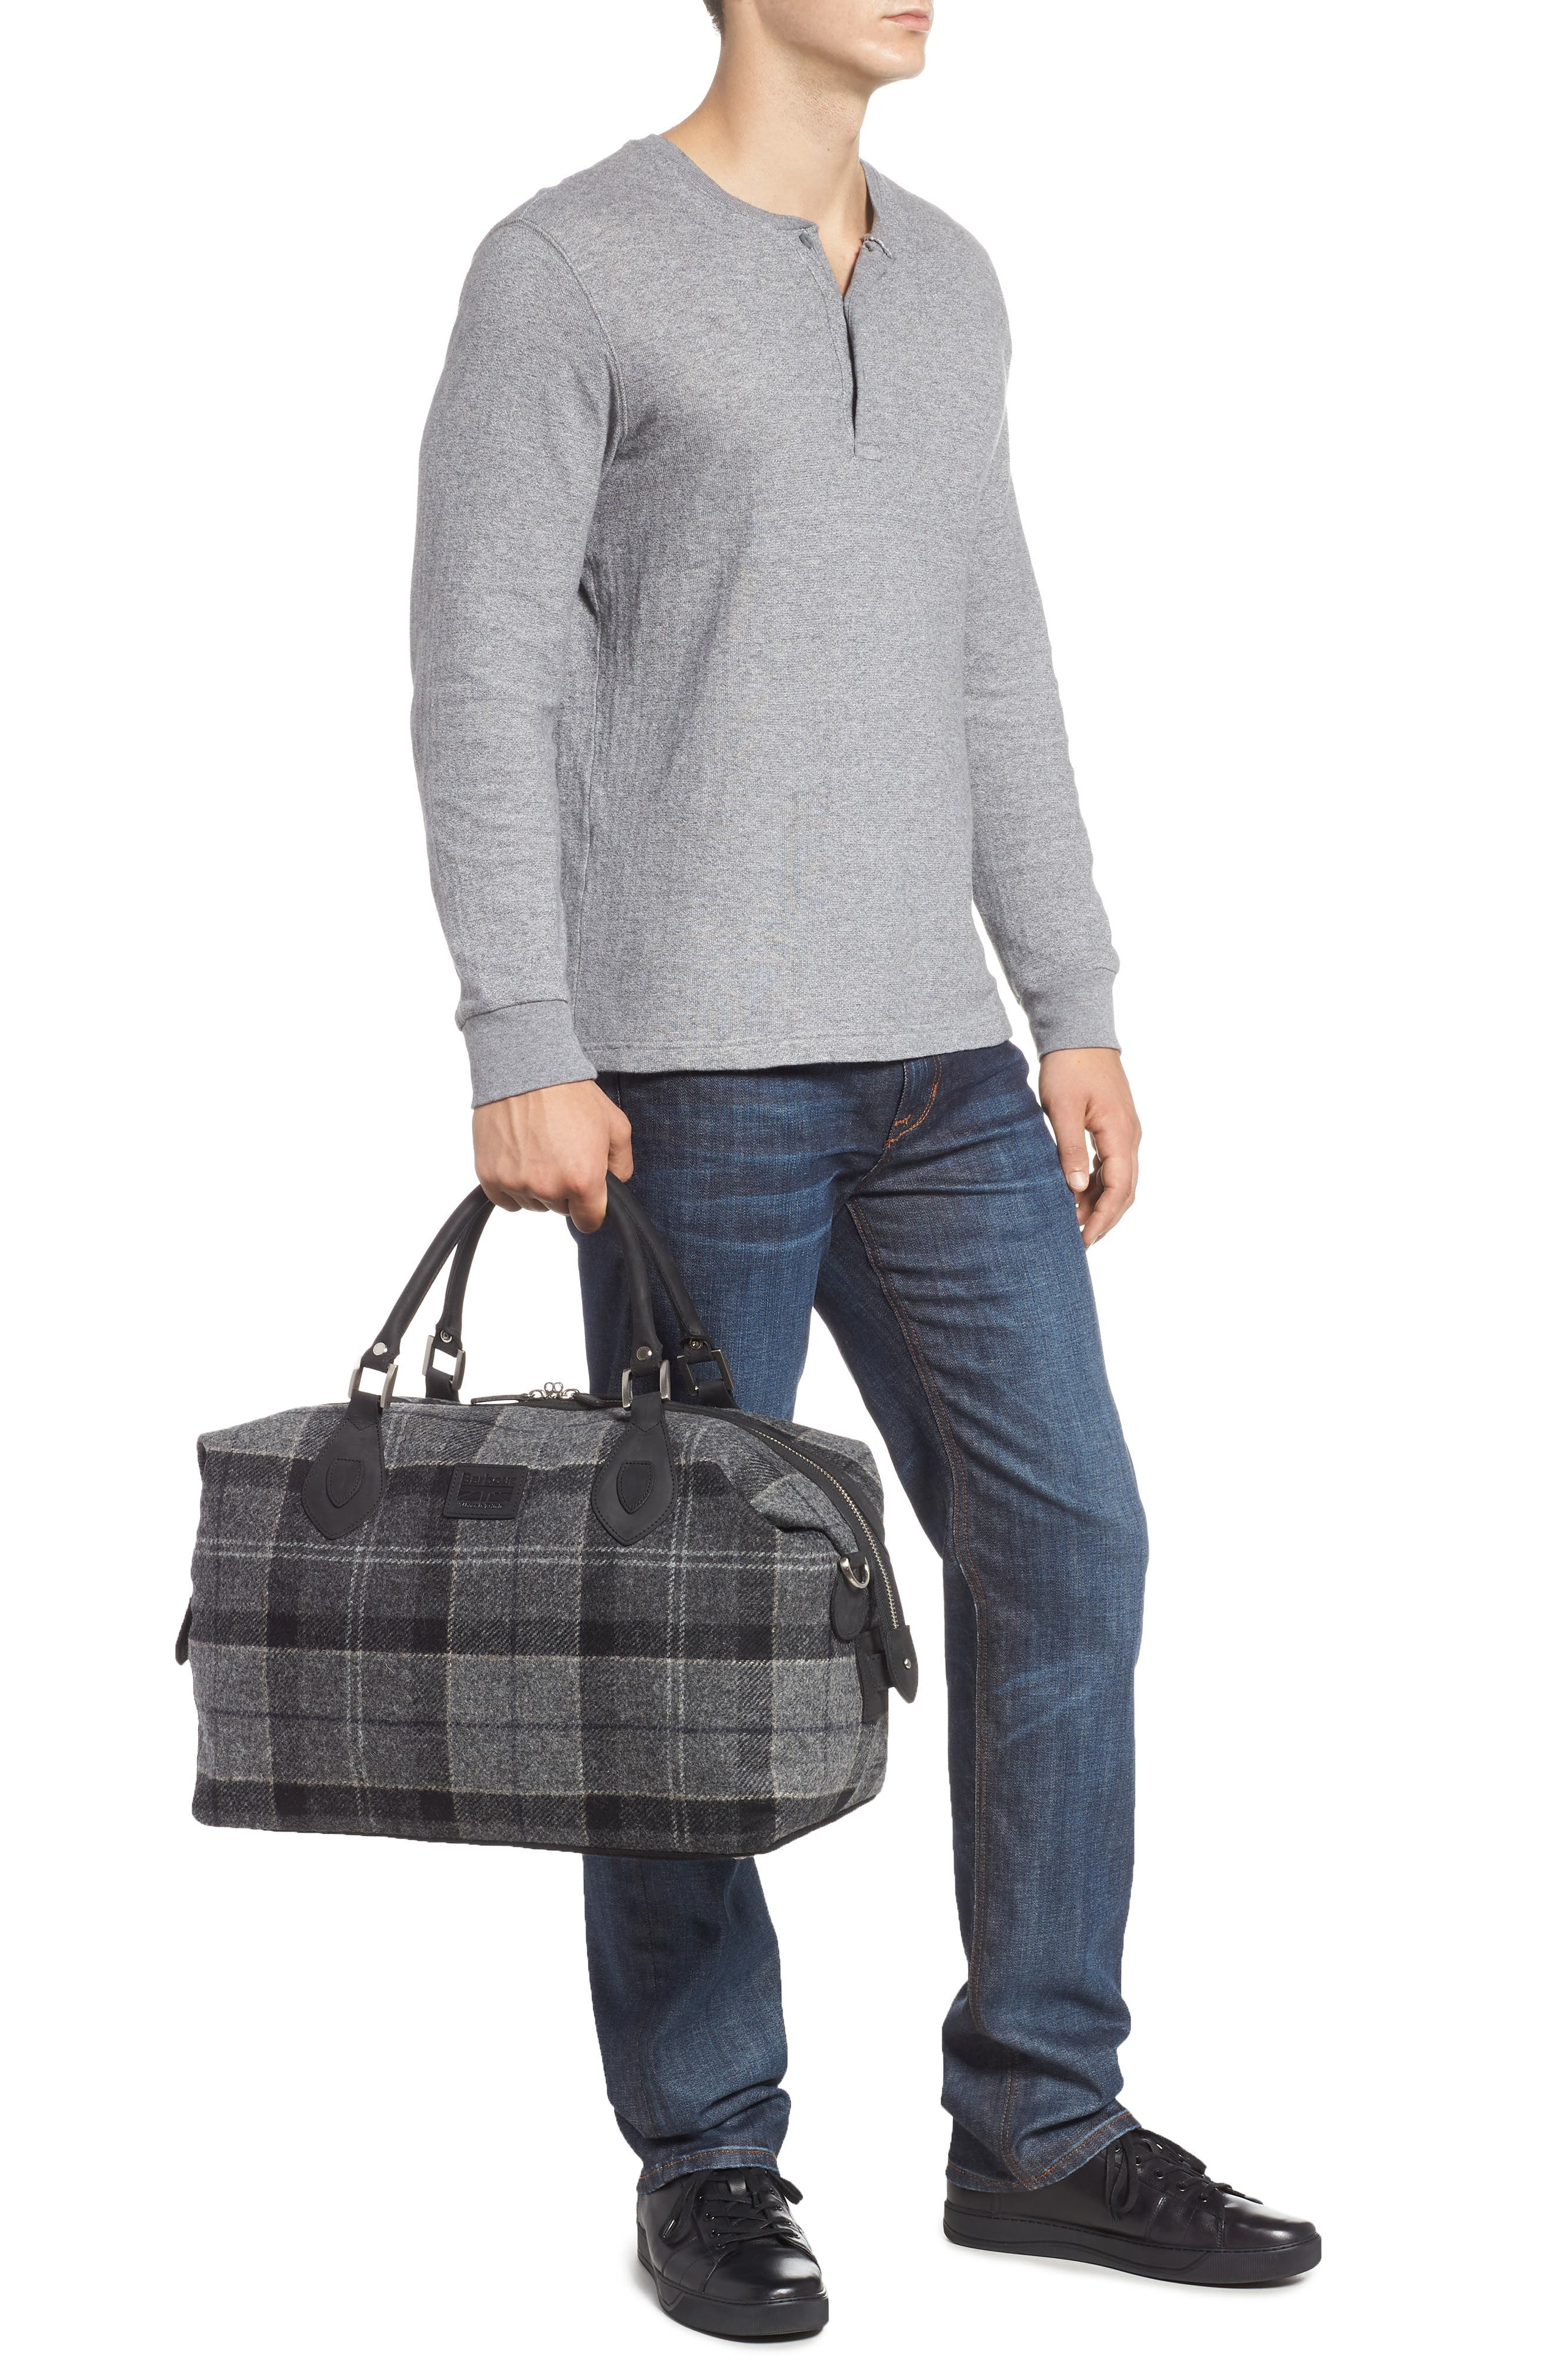 Shadow Duffel Bag,                             Alternate thumbnail 2, color,                             BLACK/ GREY TARTAN